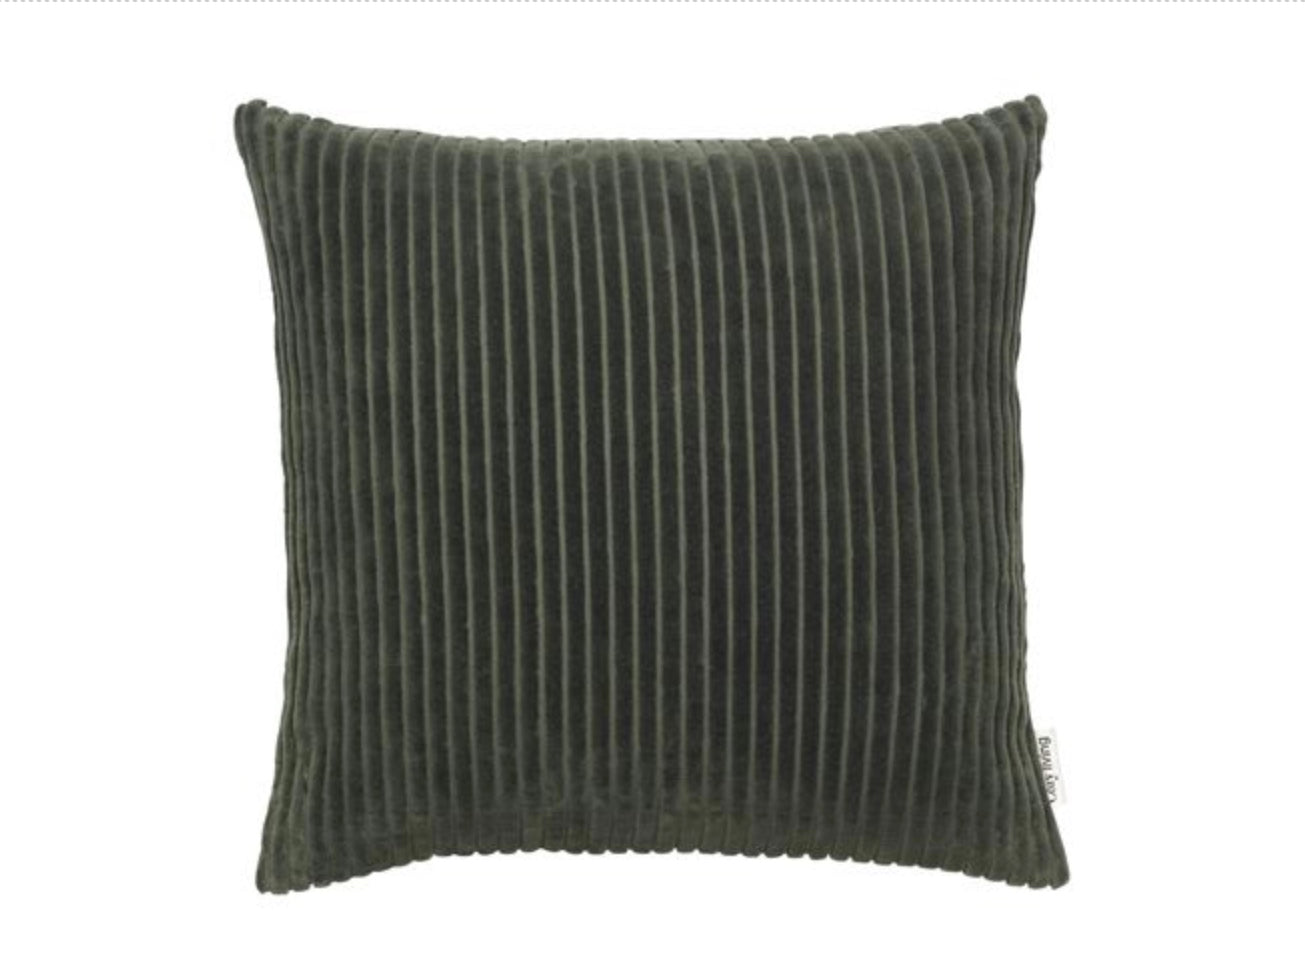 Subscription_OMNI_Cozy_Living_50x50_Ribbed_Green_Pillow_Lounge_comfort_office_absorb_sound_cozy_classic_Danish_design